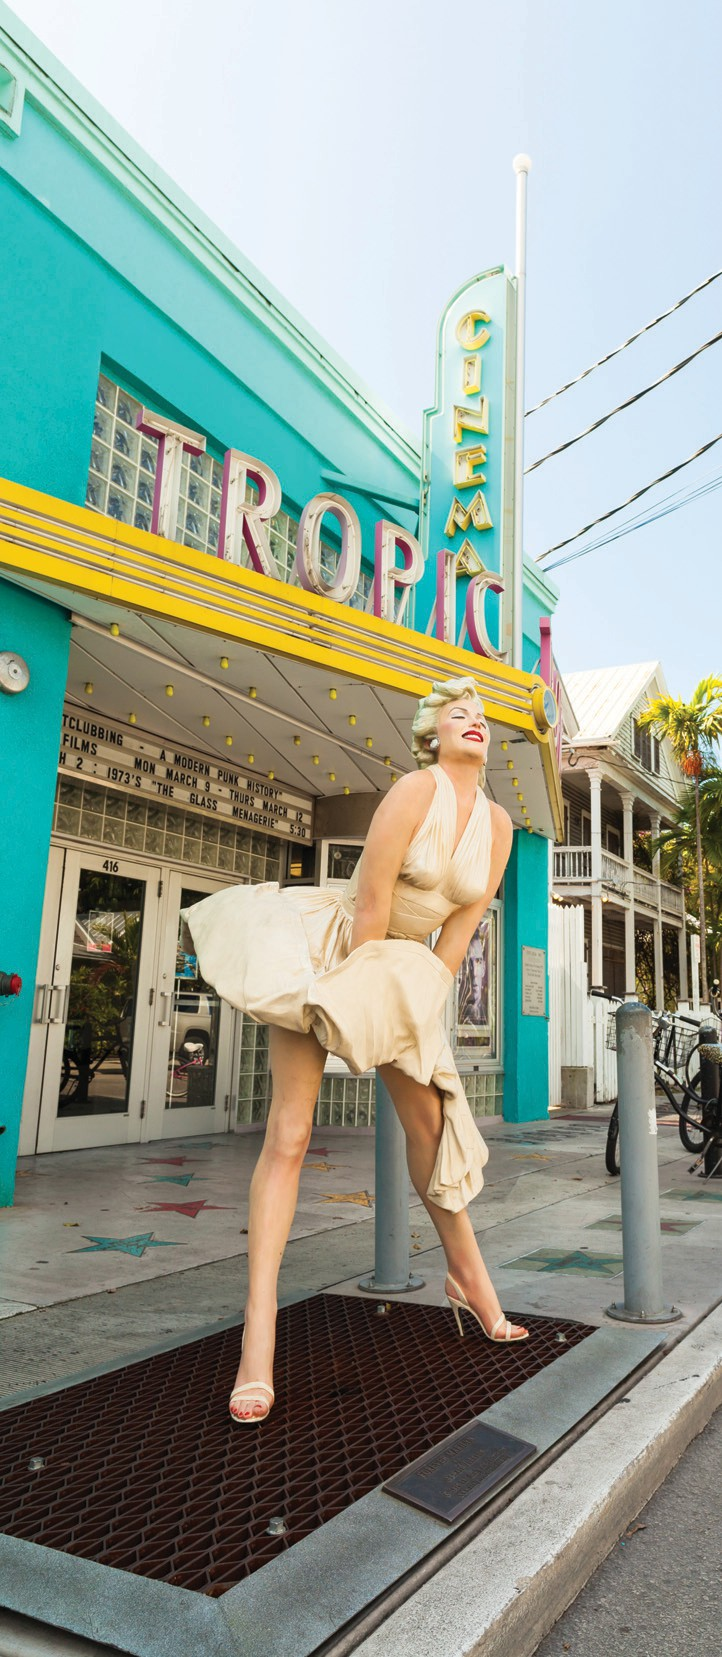 A statue of the classic Marilyn Monroe posed in front of the Tropic Cinema in Key West. COURTESY PHOTO